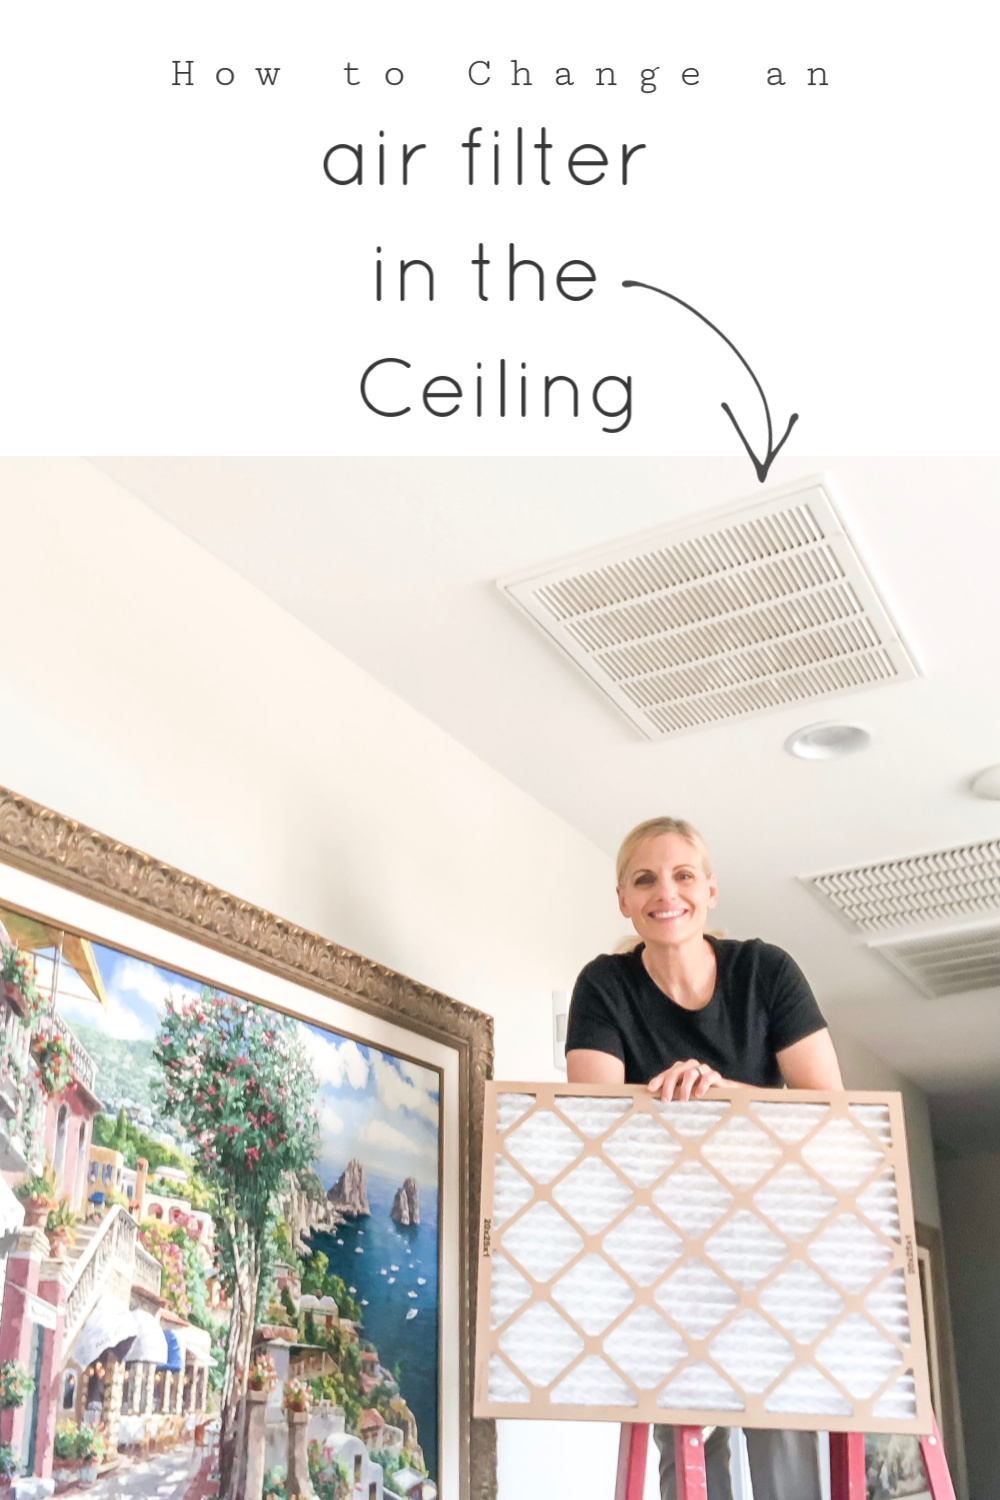 How to change and air filter in the ceiling